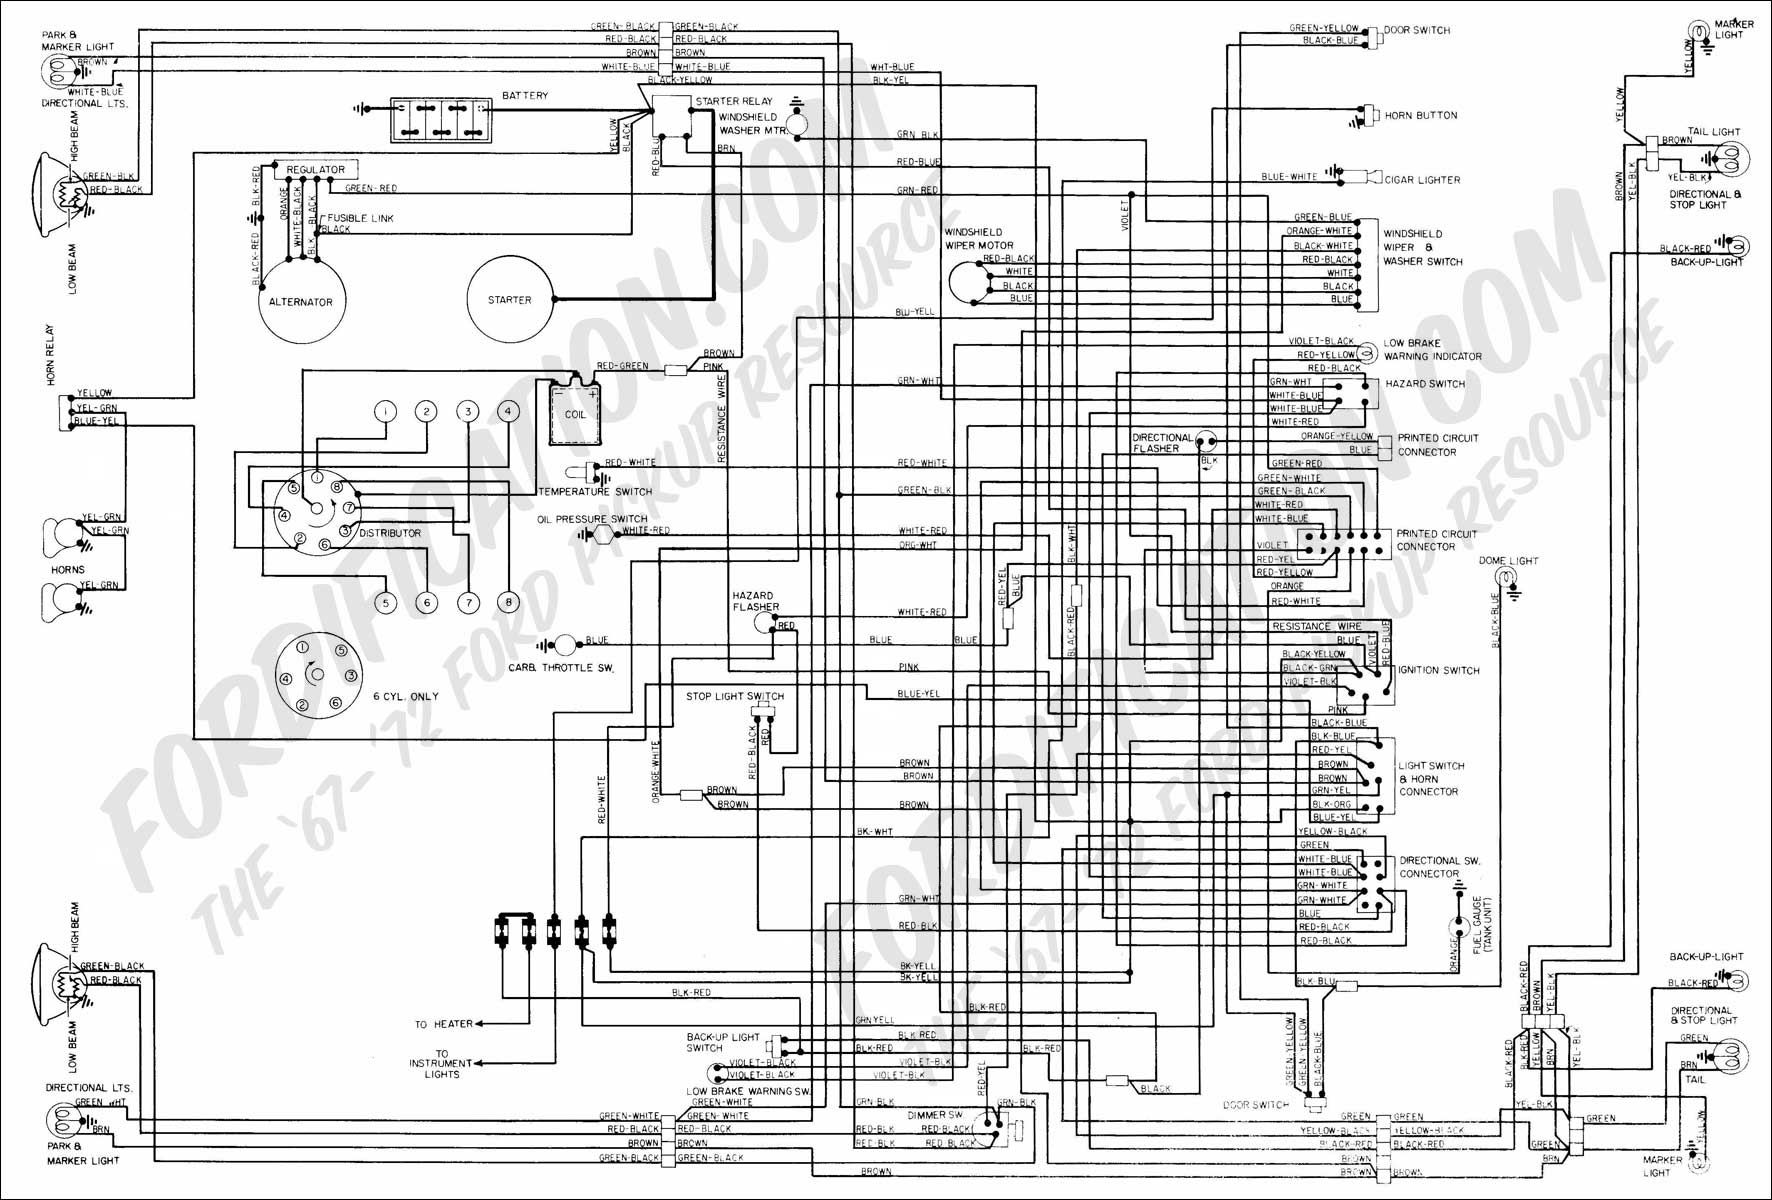 hight resolution of 05 ford f 150 fuel pump wiring harness diagram wiring diagram article ford f 150 wiring harness diagram on 2005 ford expedition fuel pump